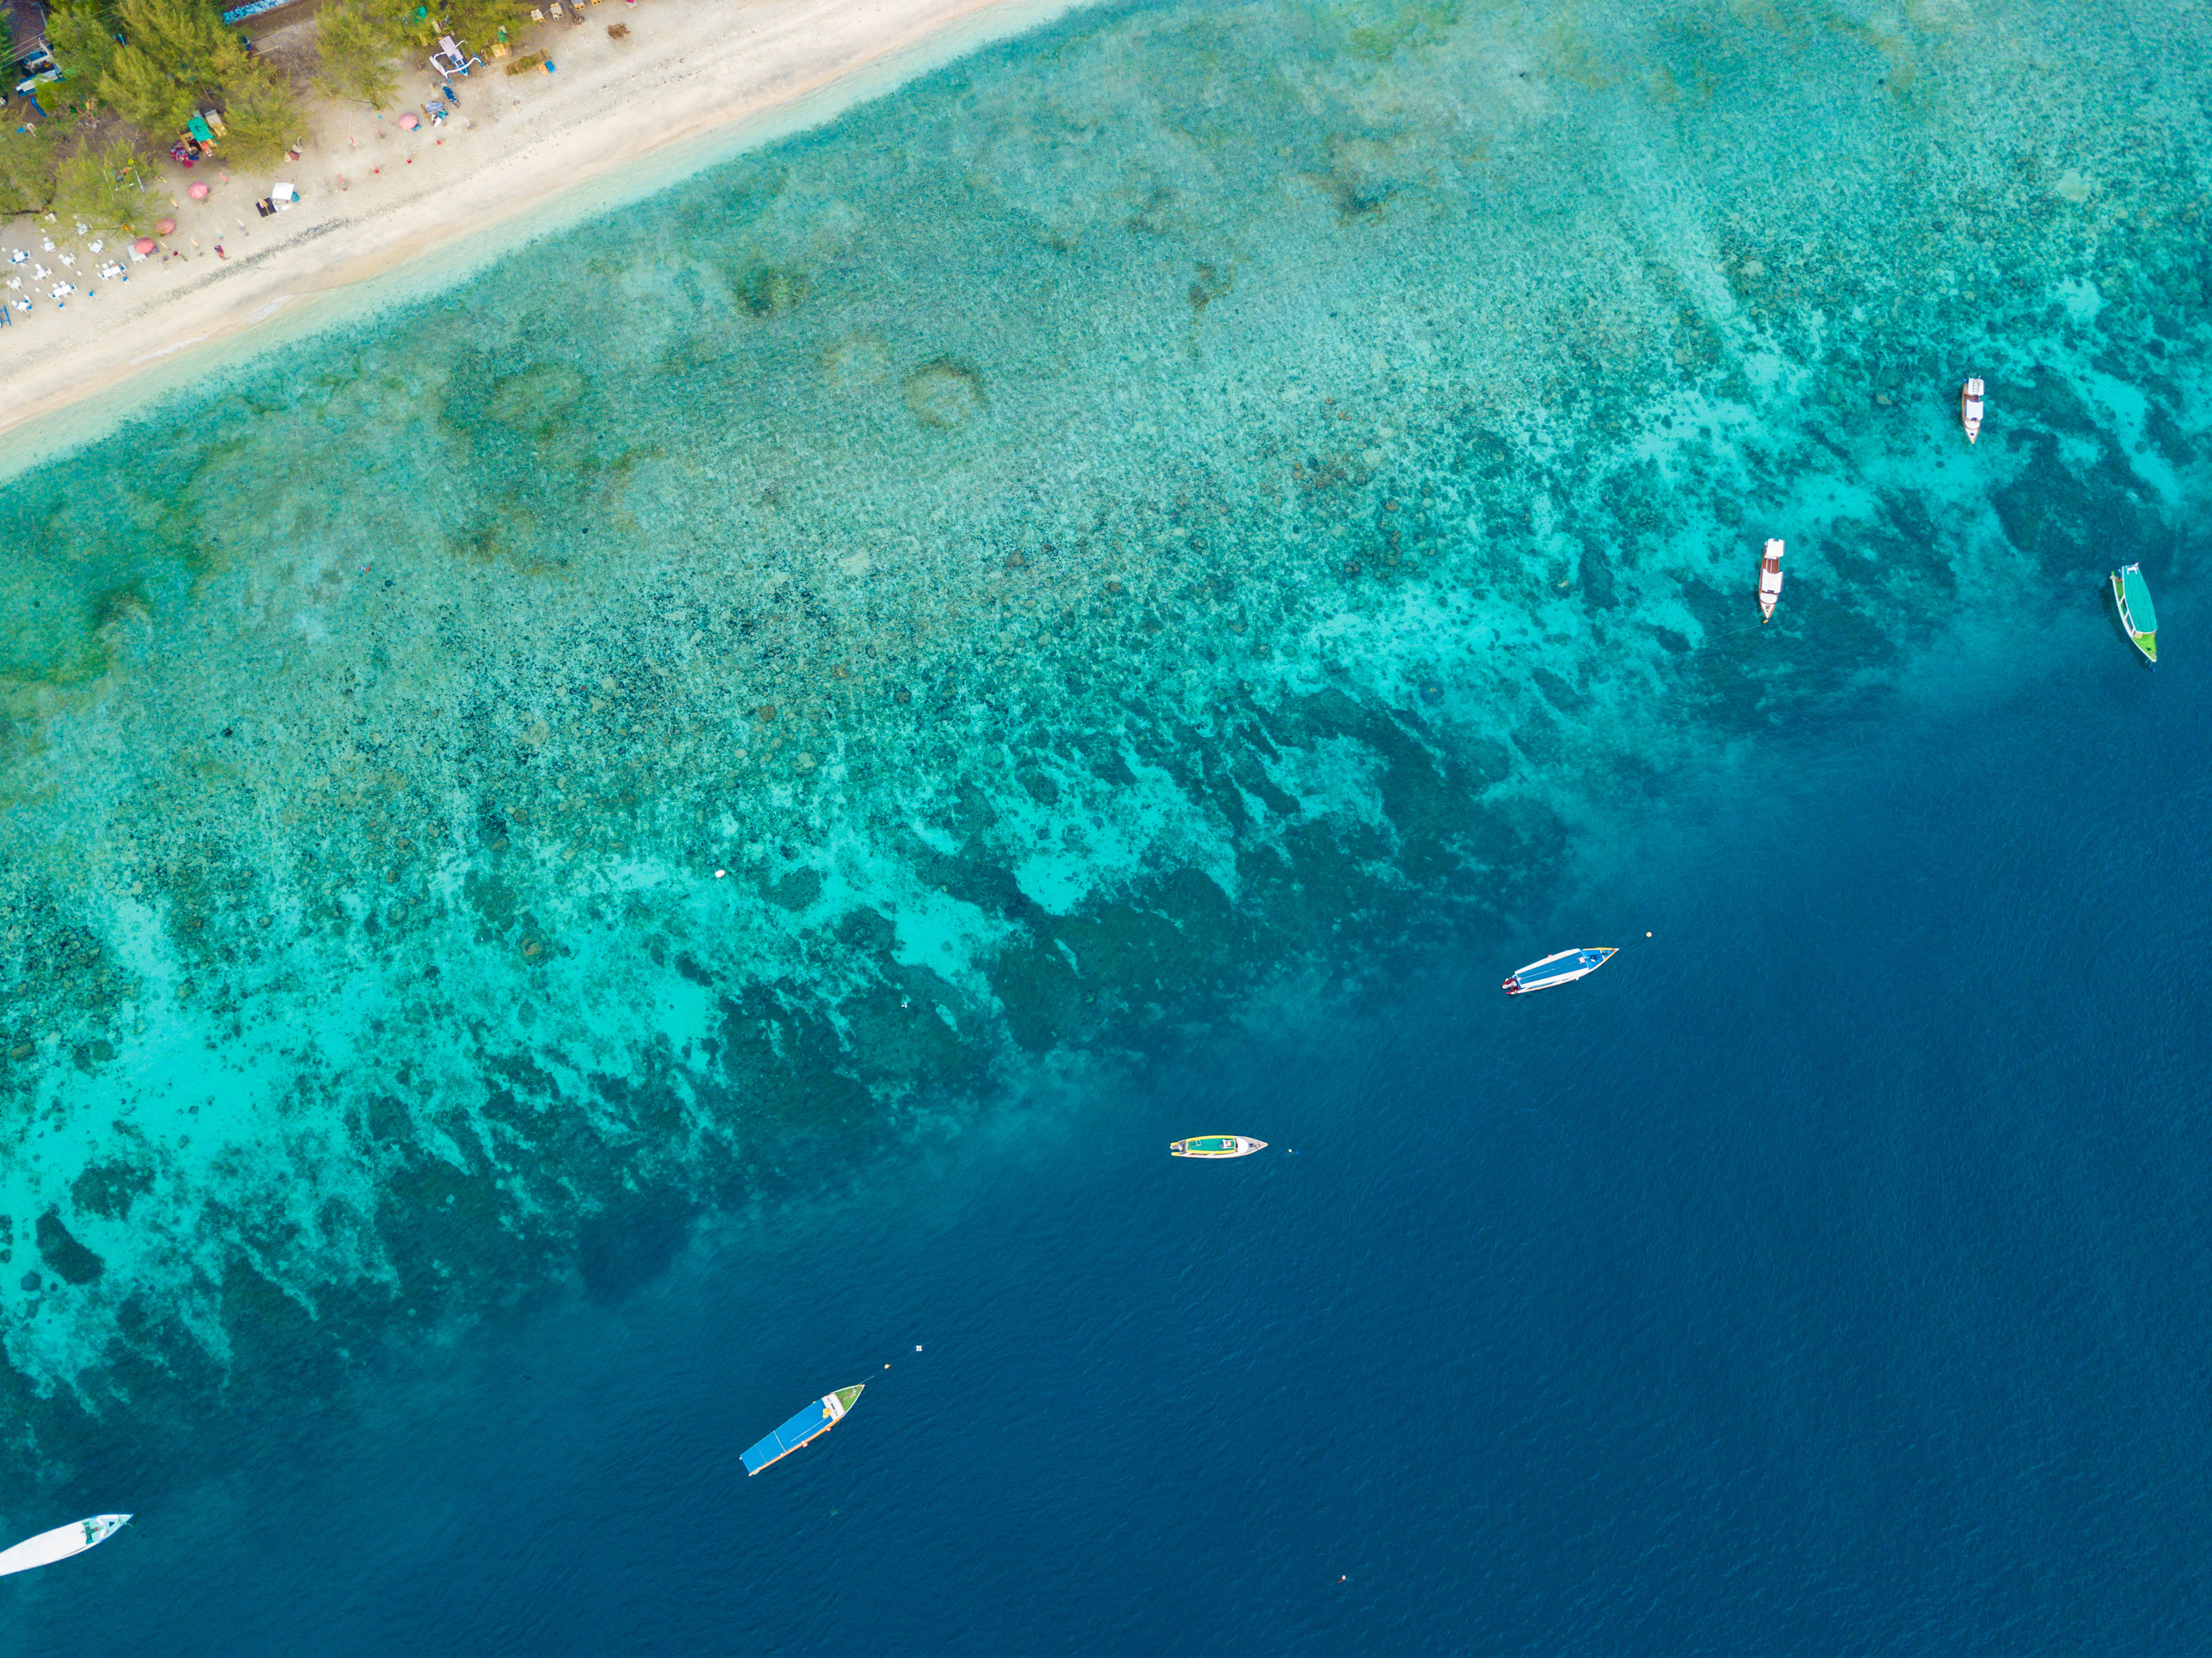 Aerial view of Gili Island coastline with boats, white sand and turquoise waters, West Nusa Tenggara, Indonesia.